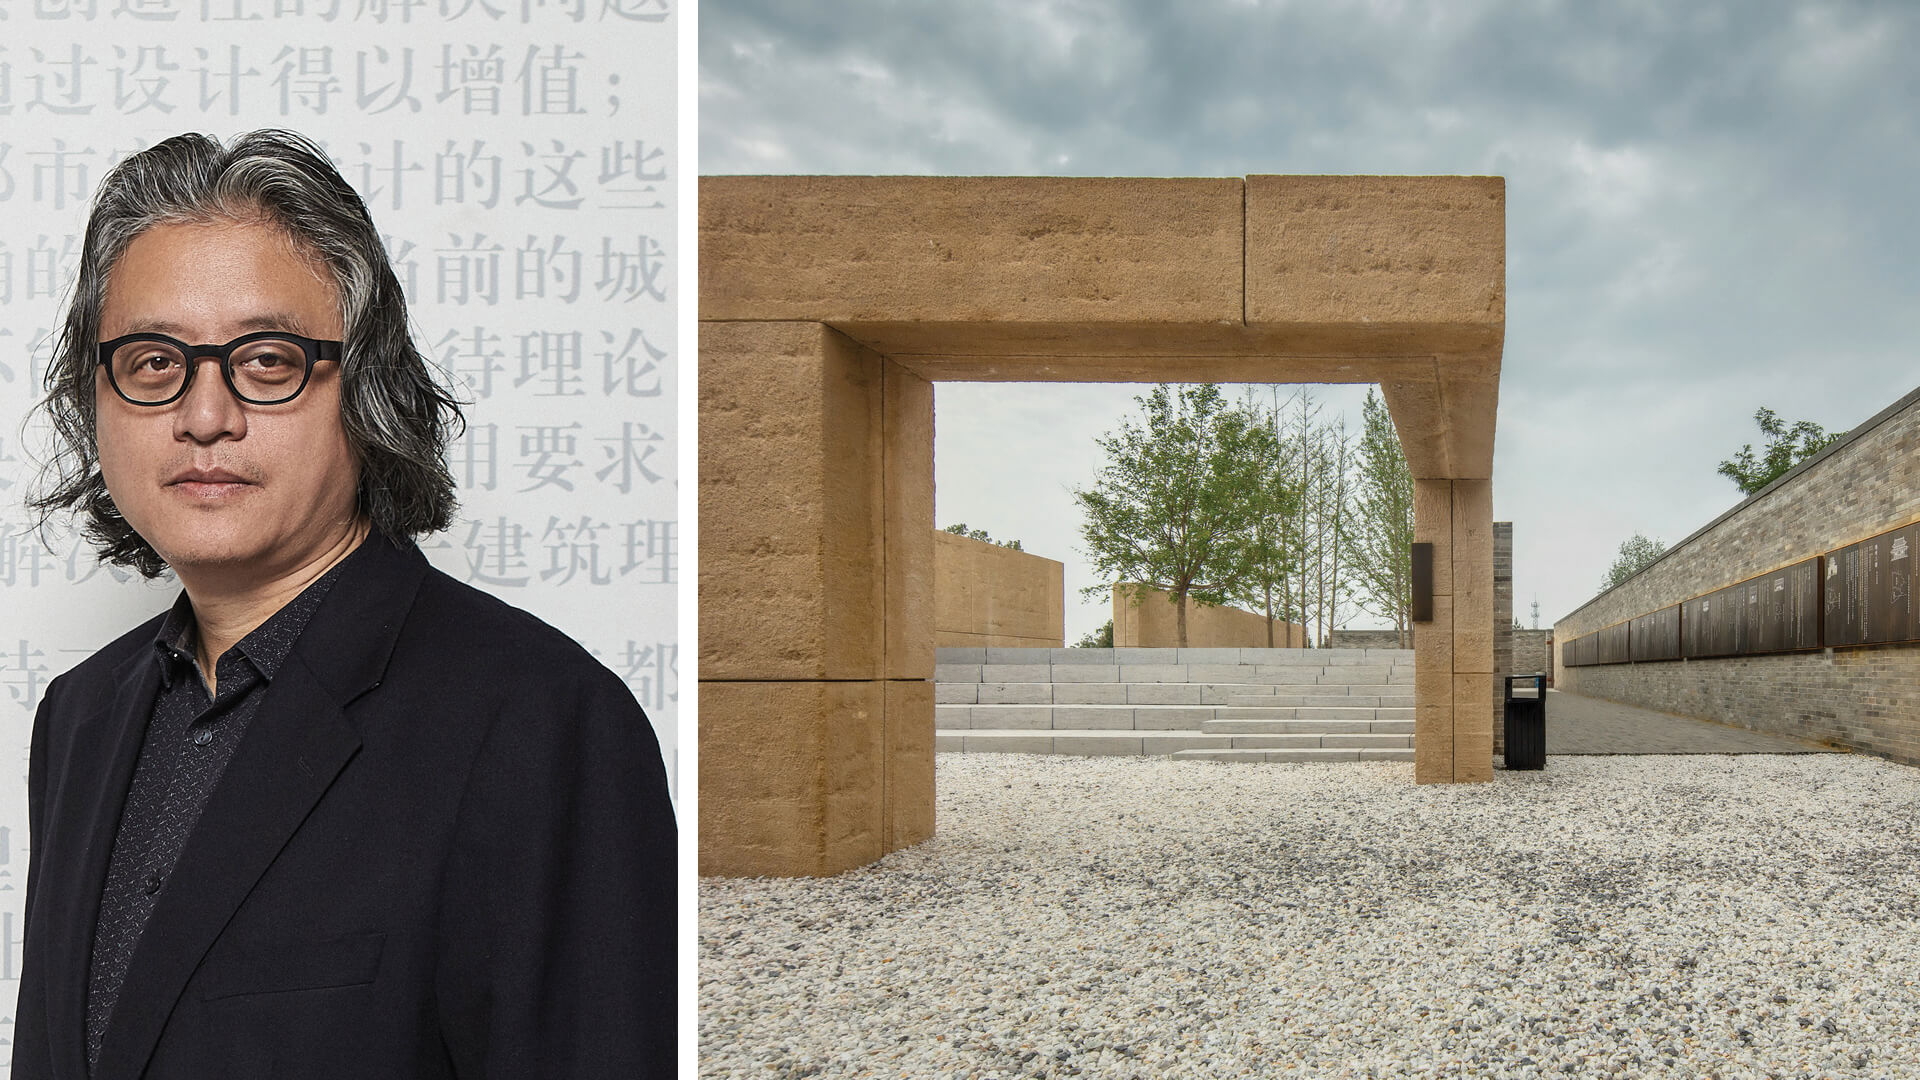 Chinese architect Wang Hui of URBANUS picks community building over form making